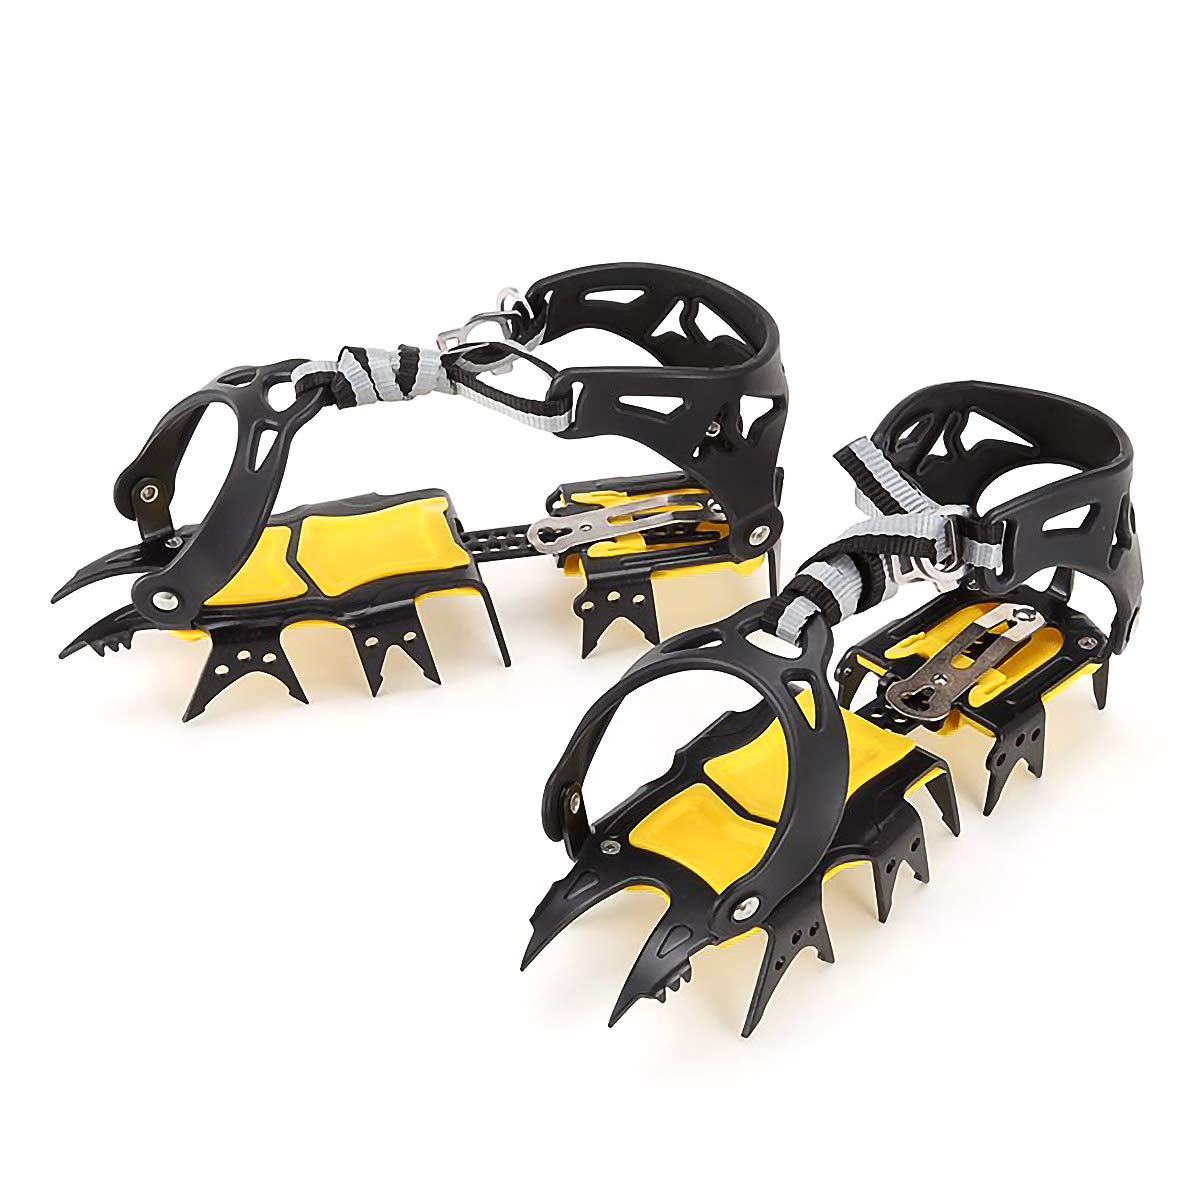 Walsilk Crampons Traction Cleats Spikes Snow Grips,Anti-Slip Stainless Steel Crampons for Mountaineering & Ice Climbing (18 Teeth crampons) by Walsilk